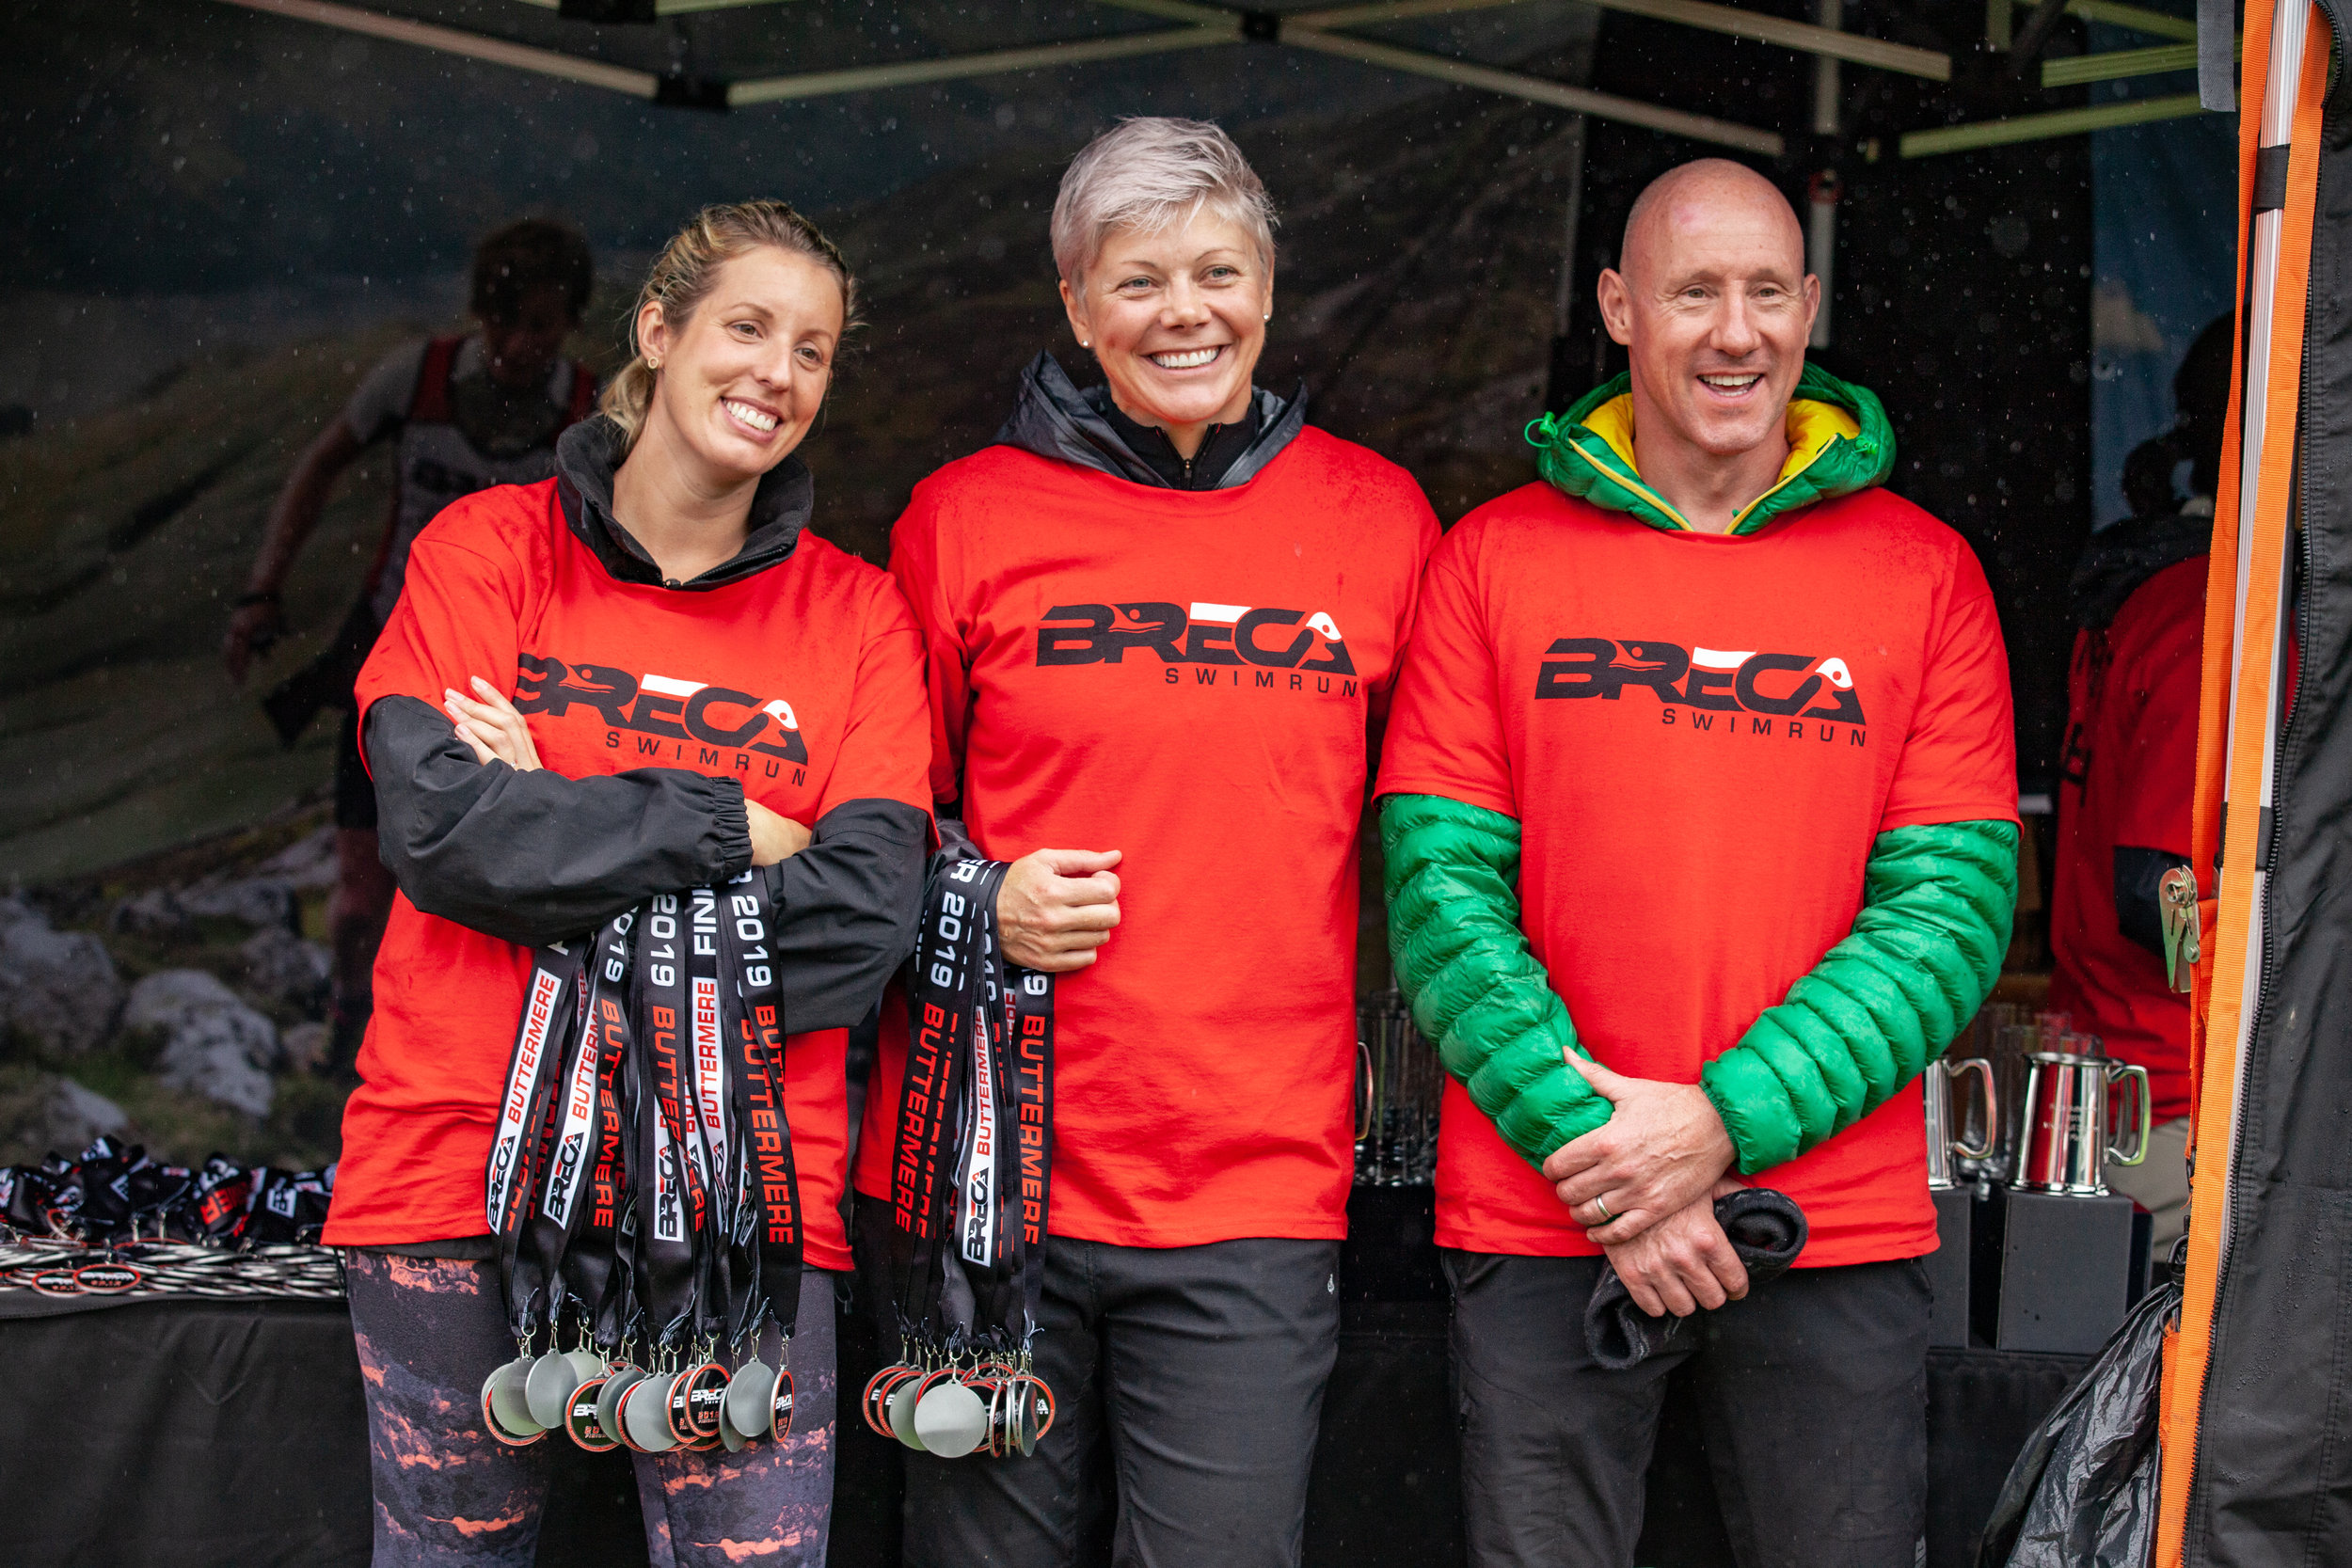 """It was the highlight of my year""""We've just had a brilliant weekend in Gower, taking part and volunteering at the swimrun!!"" -"